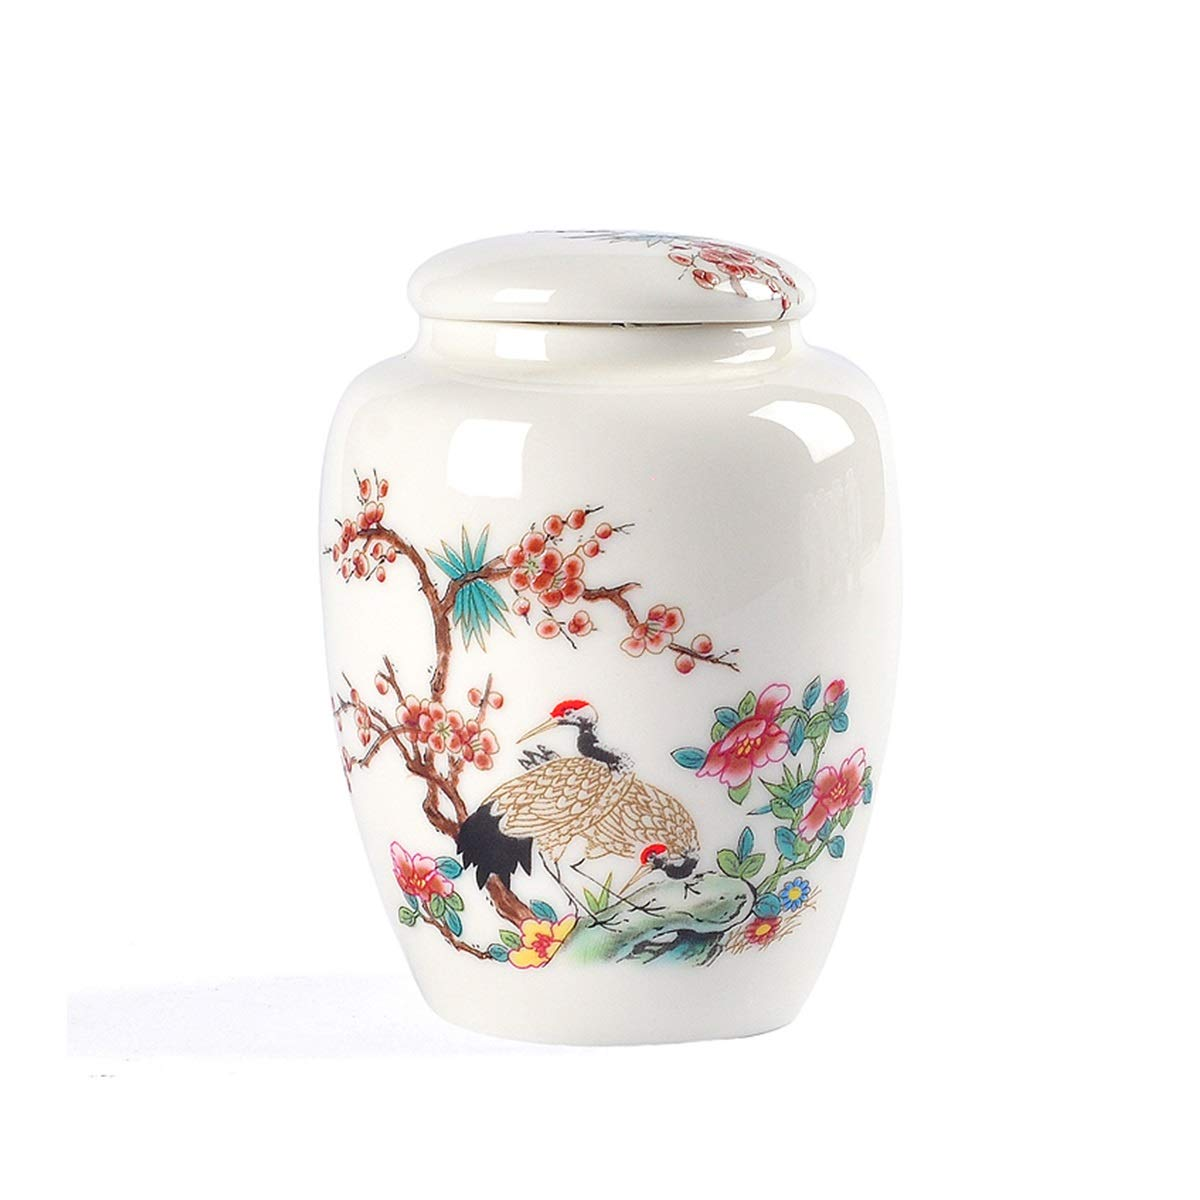 F 11.811.8cm F 11.811.8cm Hengtongtongxun Pet Urn,Cremation Urns for Pets,Functional Urn,Ceramic Sealed,Keepsake Box for Dogs and Cats,Tea Can,Artwork,Home Decoration,11.8  11.8cm Soul Place (Size   11.8  11.8cm, Style   F)